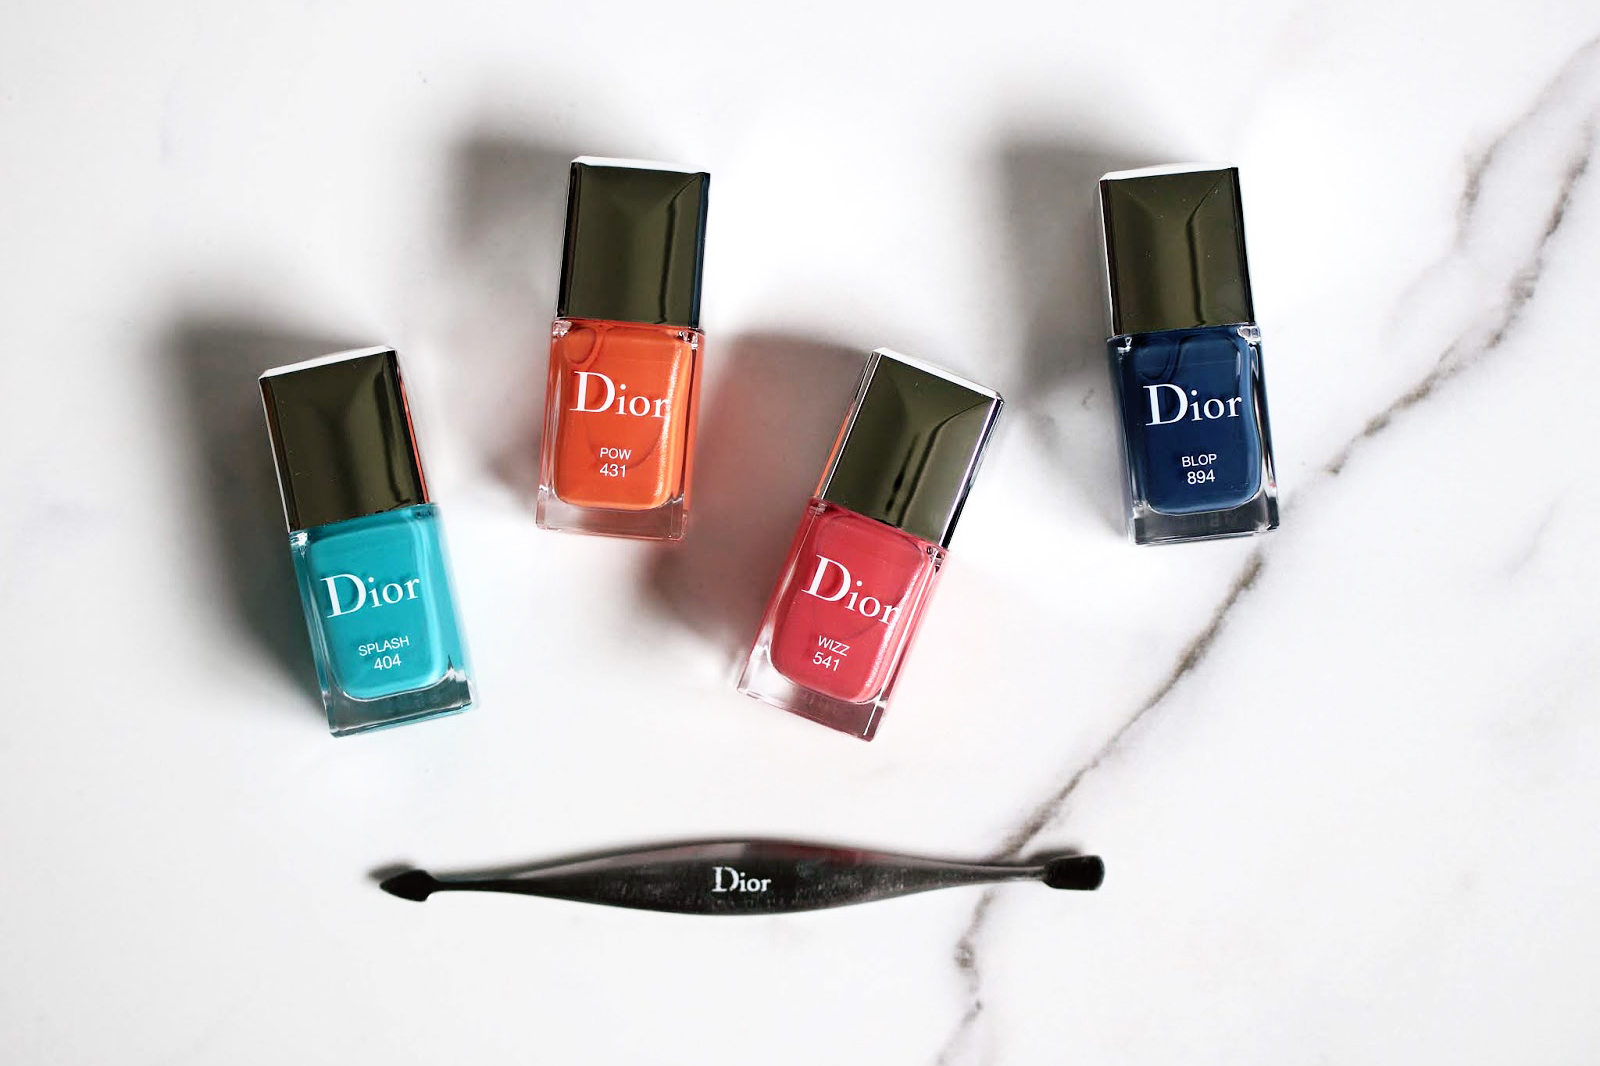 dior vernis à ongles été 2018 404 splash 541 wizz 431 pow 894 blop avis test swatch swatches